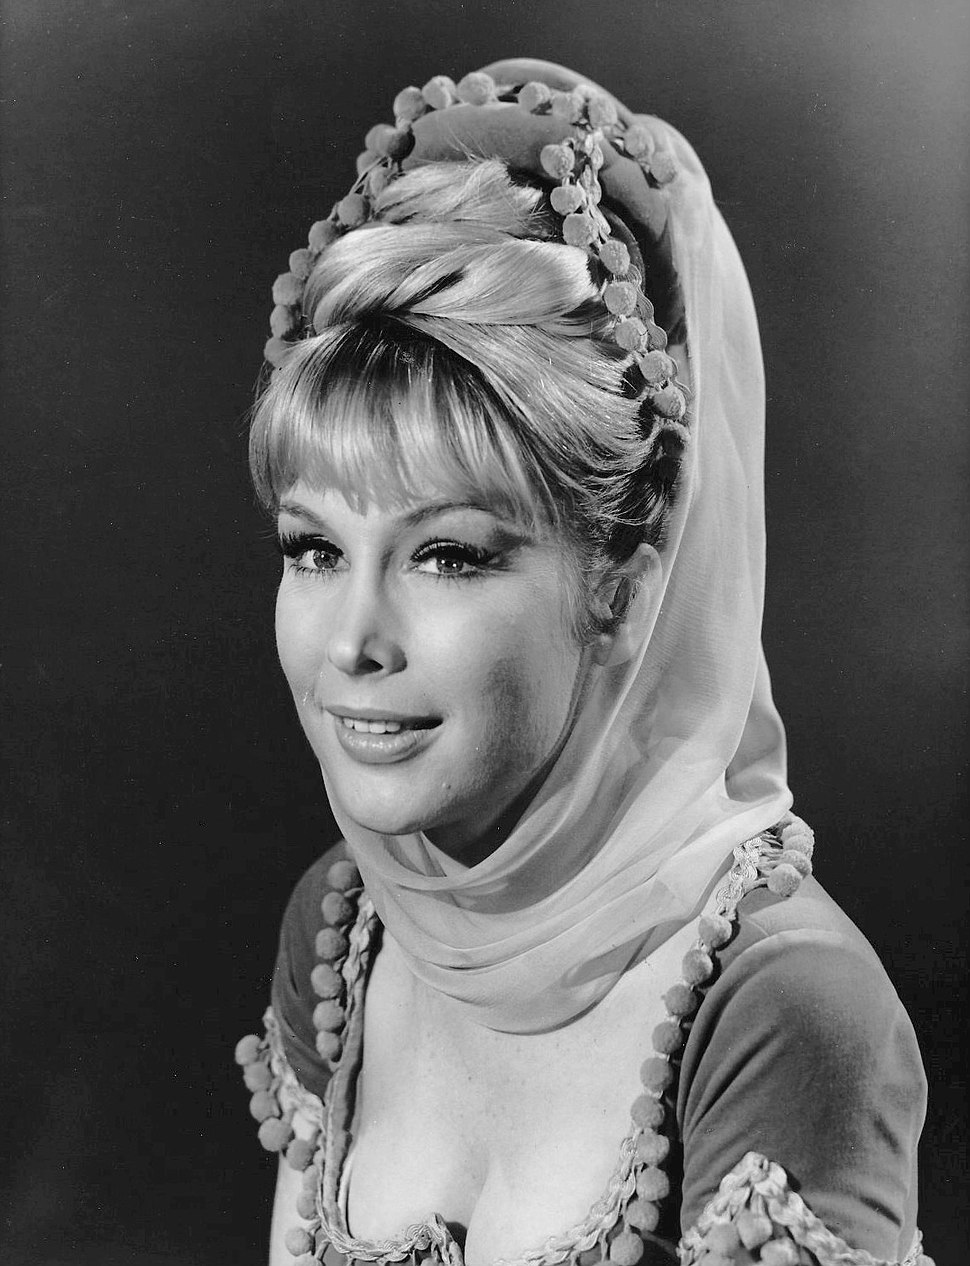 Barbara eden as jeannie 1966